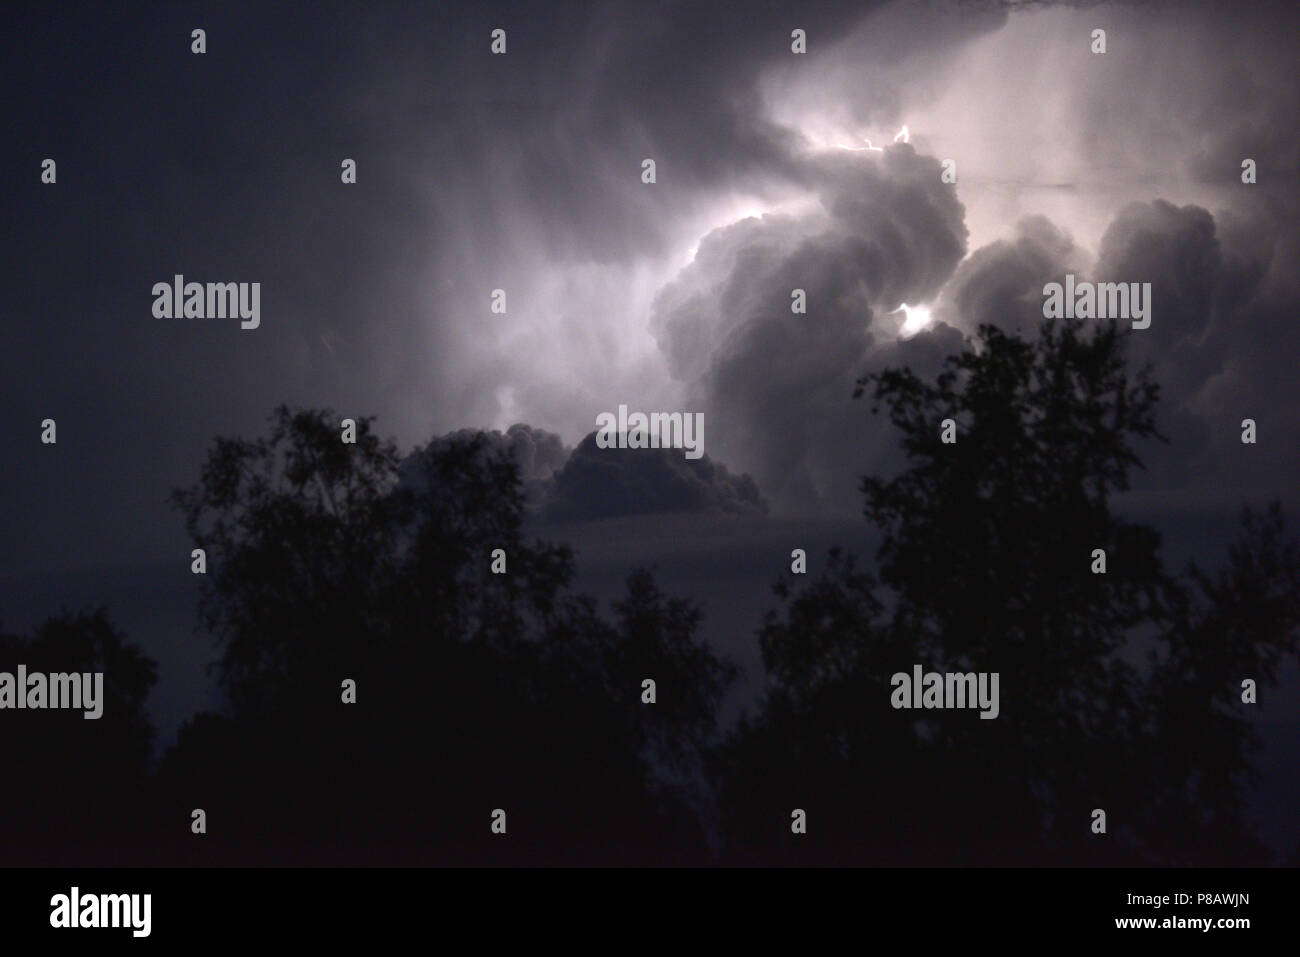 Thunder storm - Cumulonimbus clouds with lightning - Stock Image